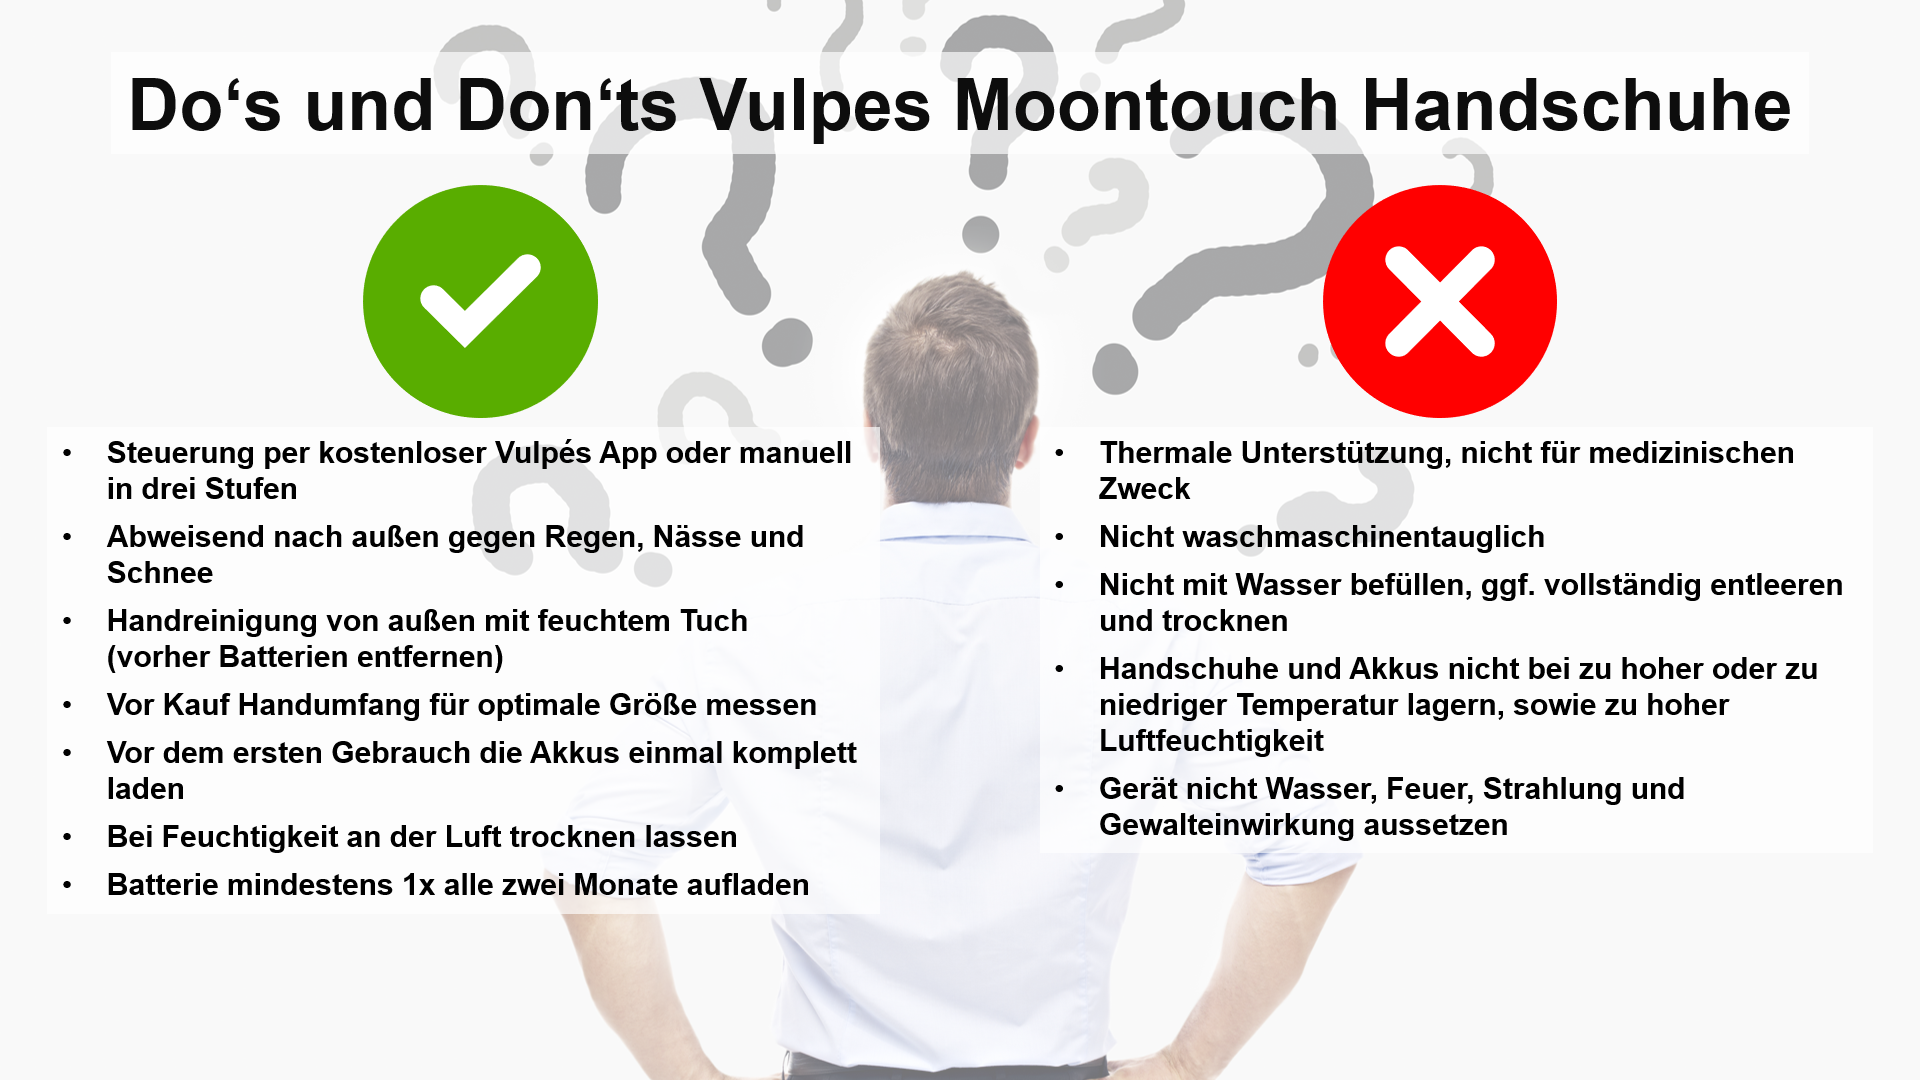 Do's und Don'ts Vulpes Moontouch